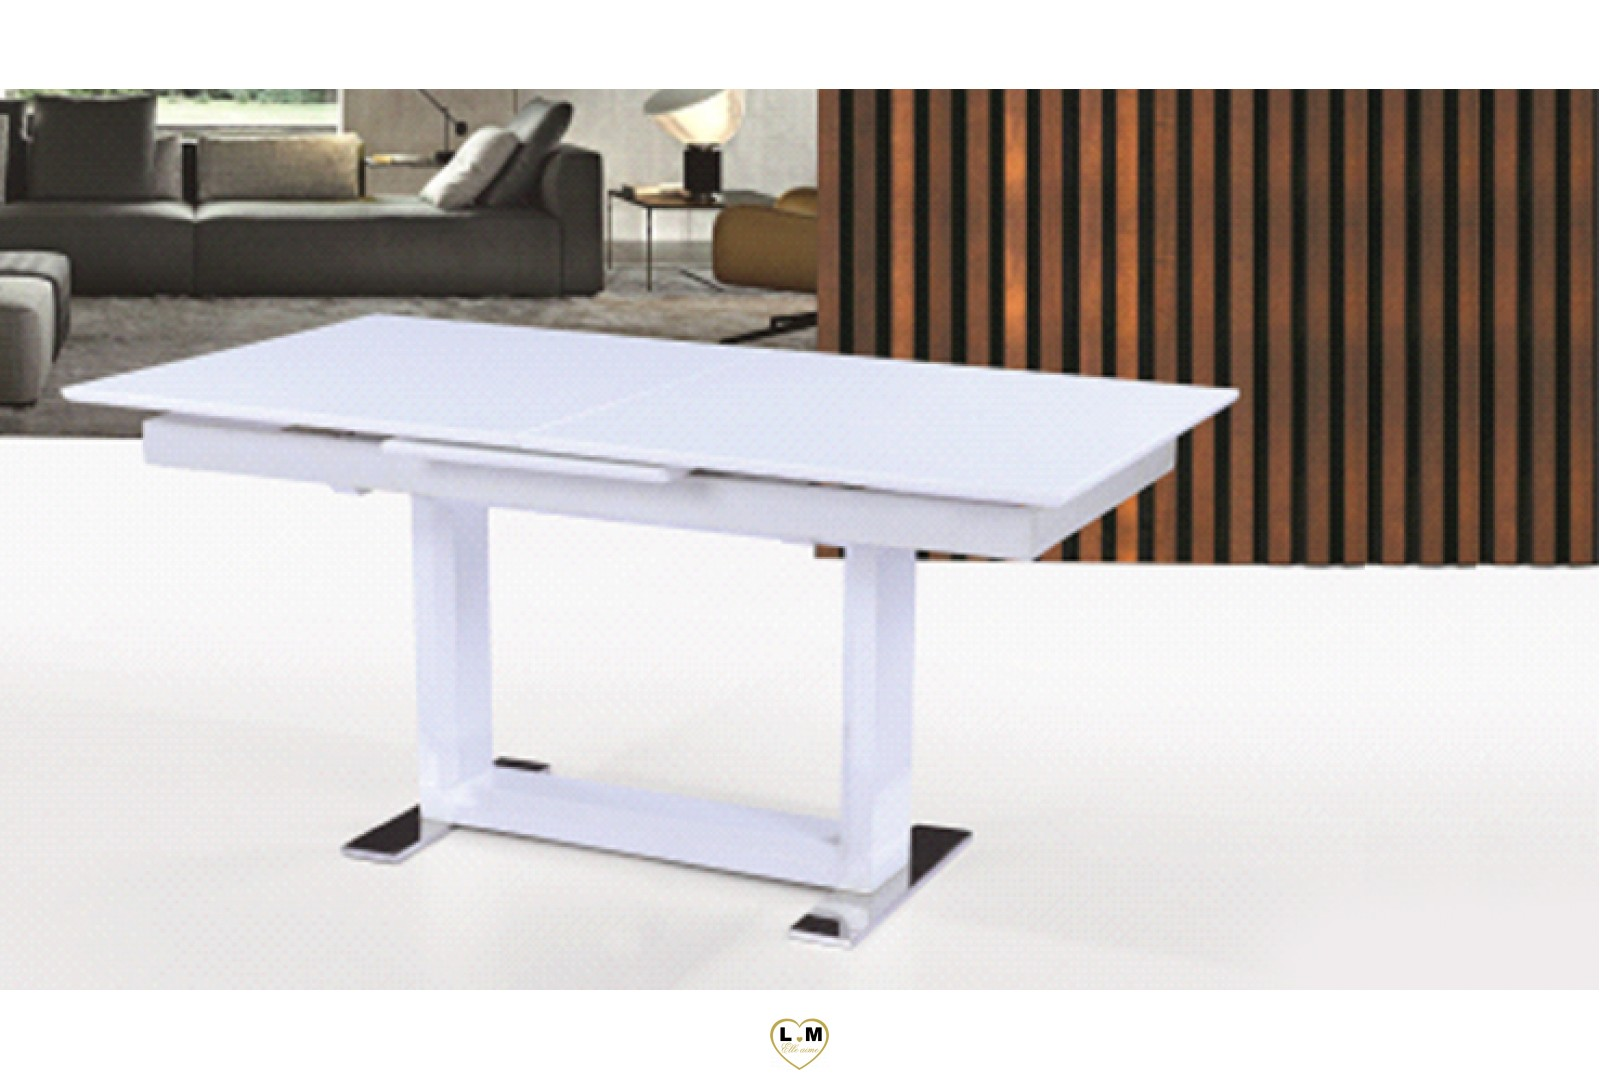 Table salle a manger blanc laque maison design for Table salle a manger laque blanc